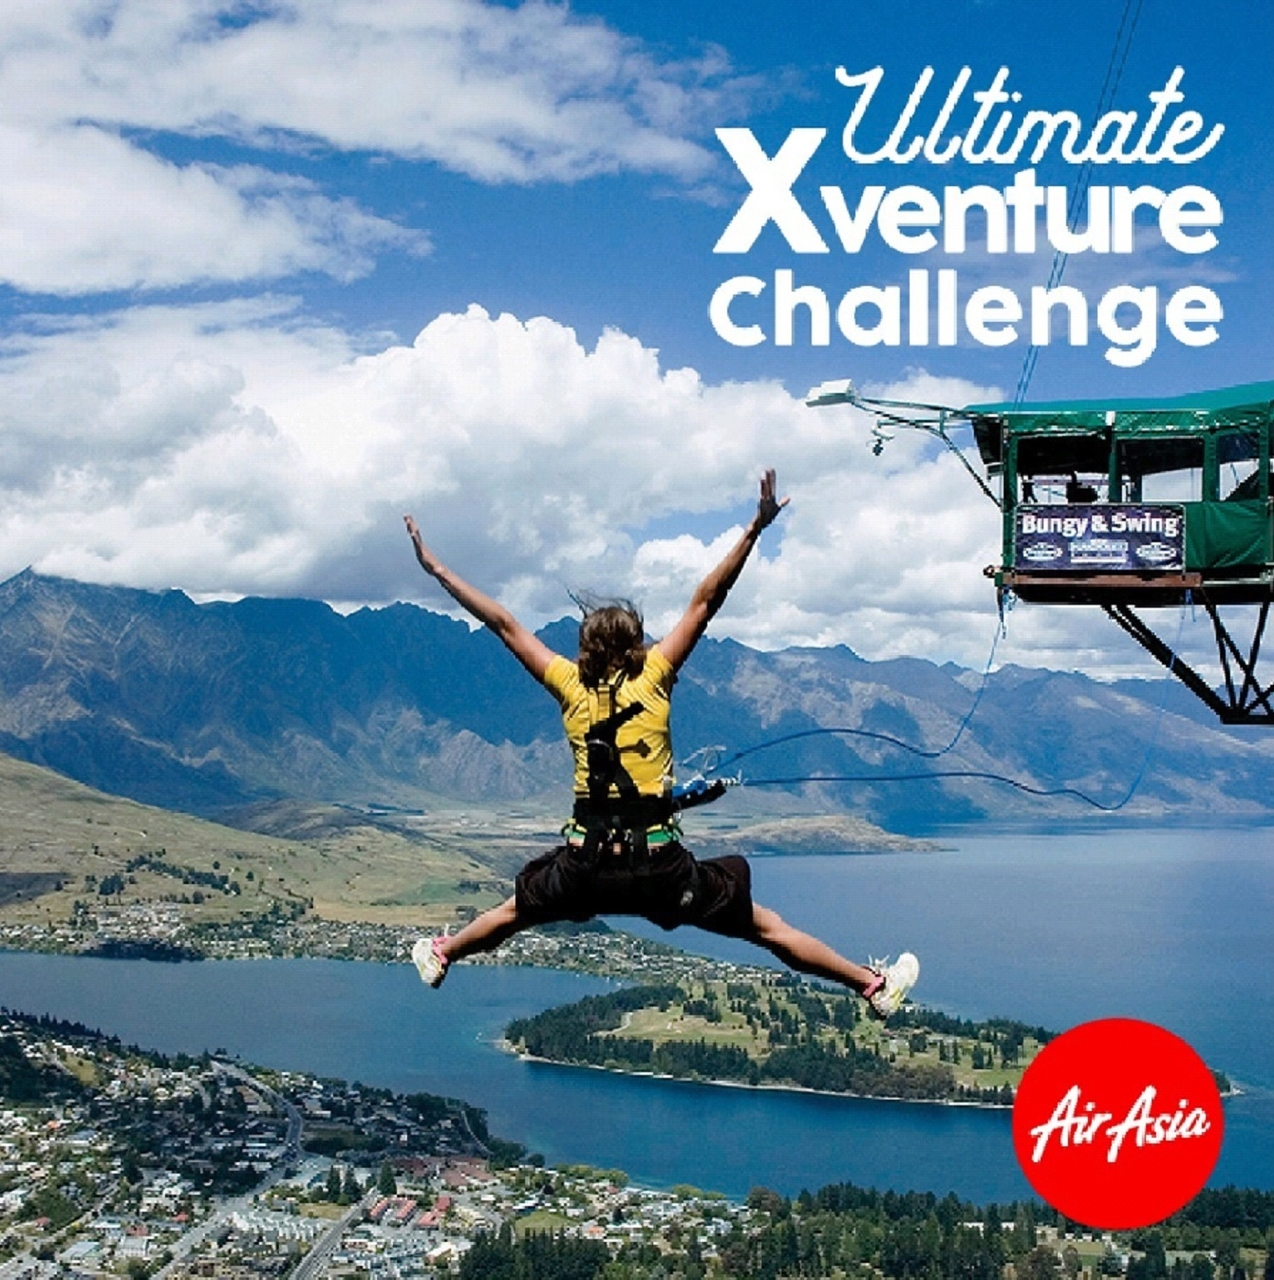 AirAsia X Ultimate Xventure Contest for Youths_1.0